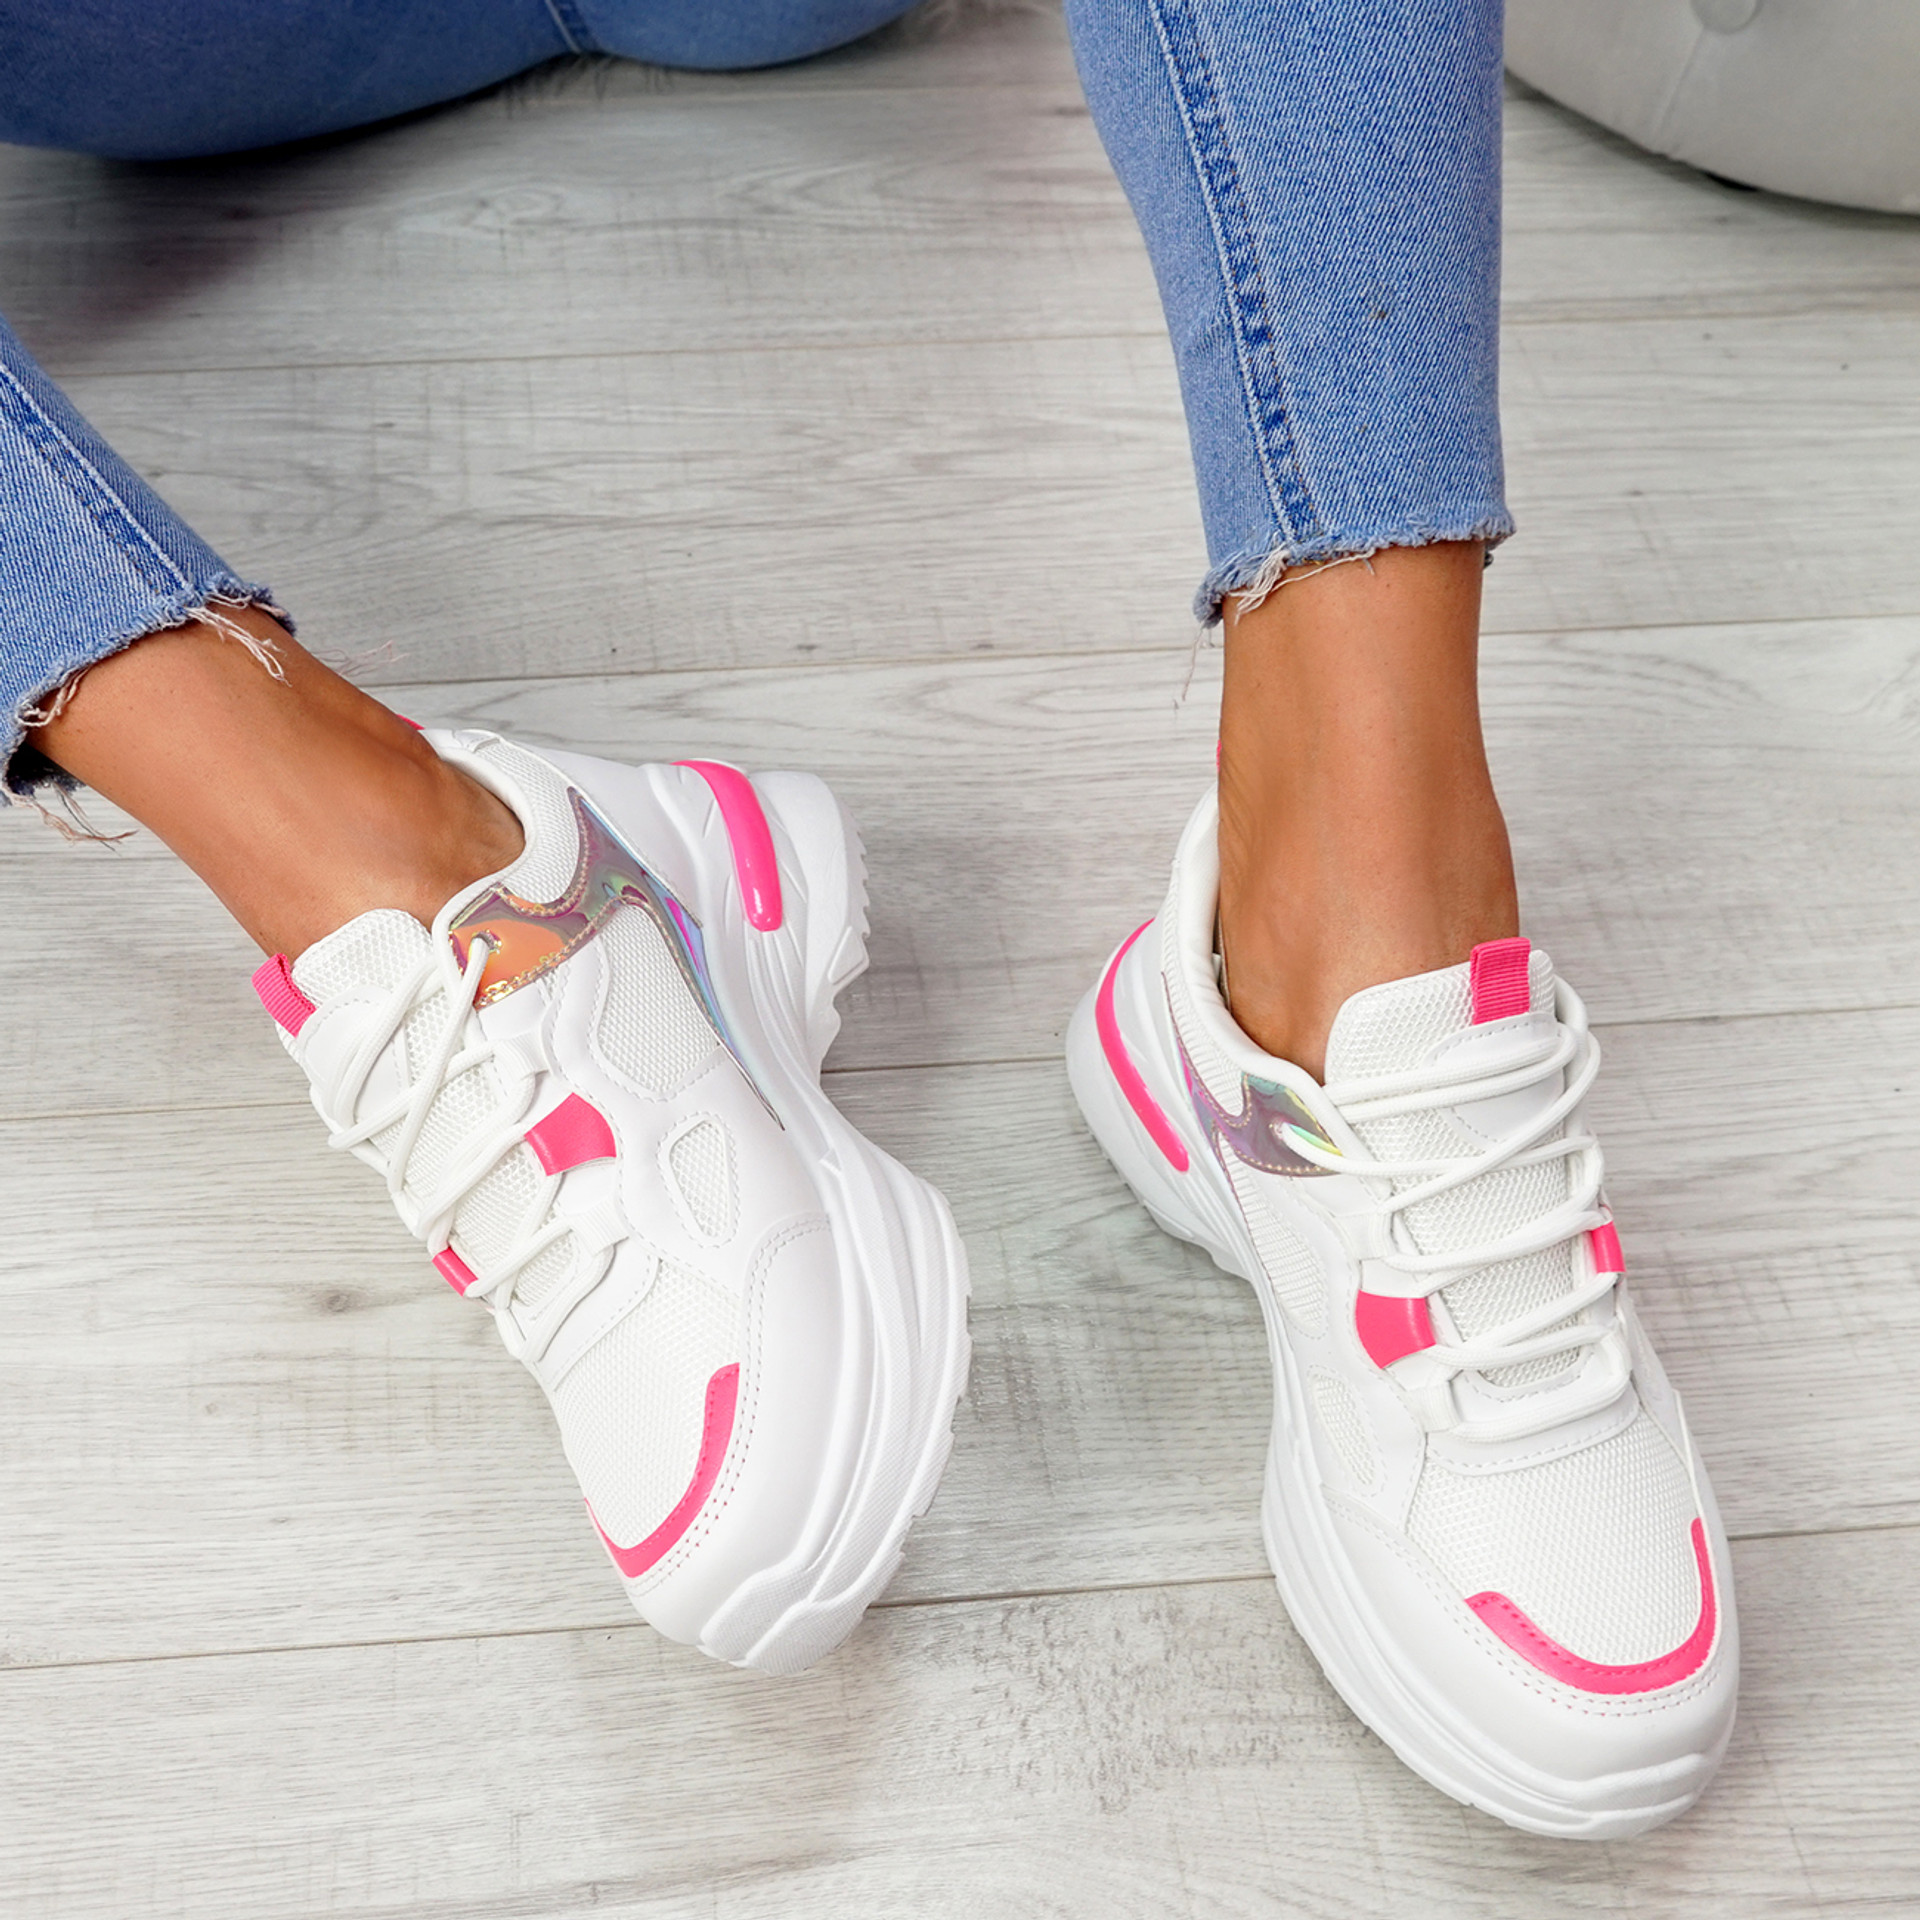 Denza Red Lace Up Chunky Sneakers